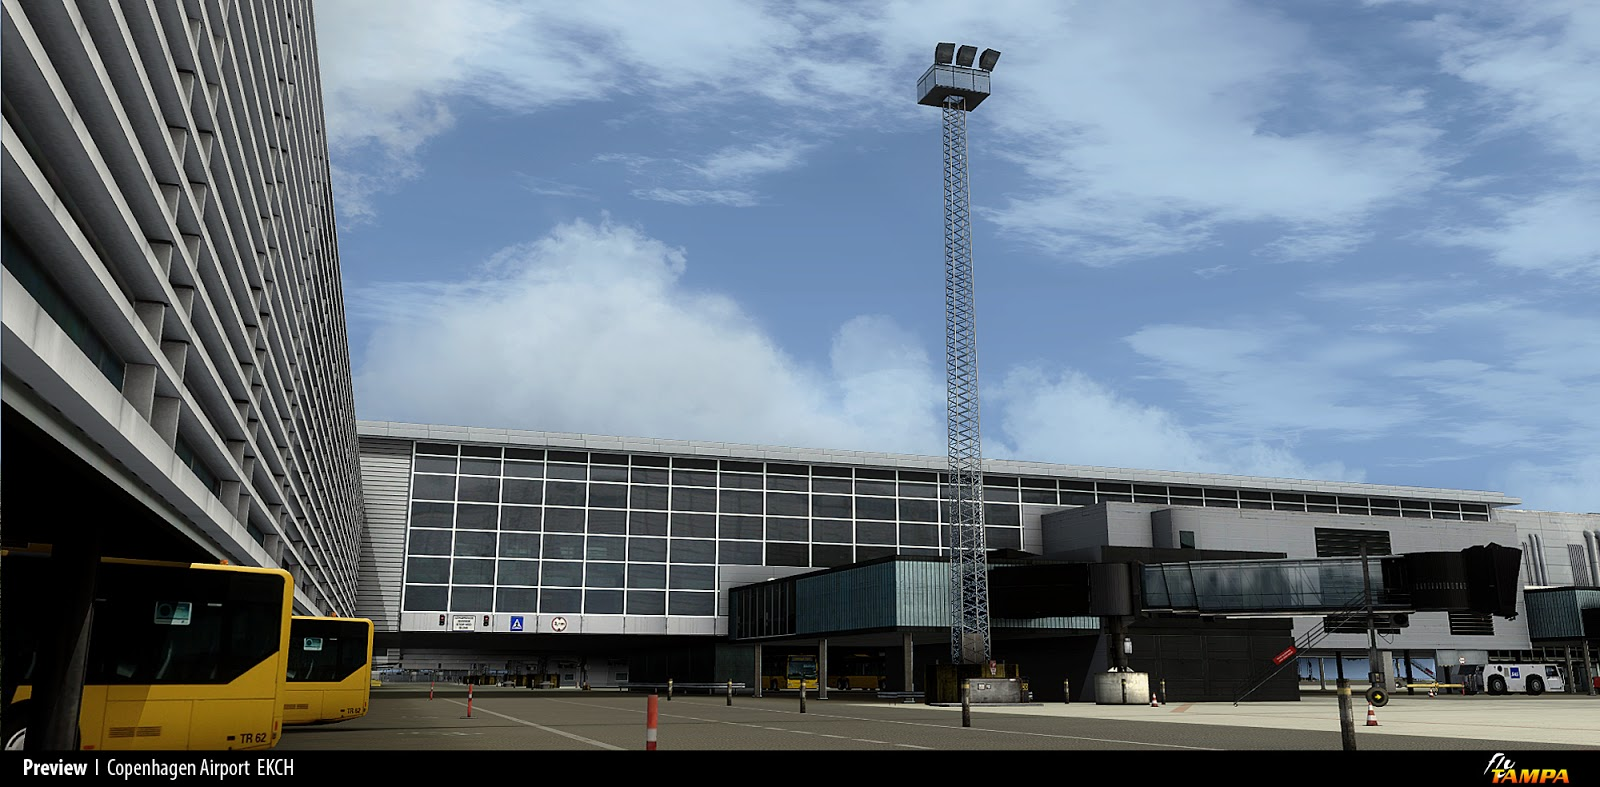 Fsx p3d Flytampa copenhagen V1 1 New Updated And Working